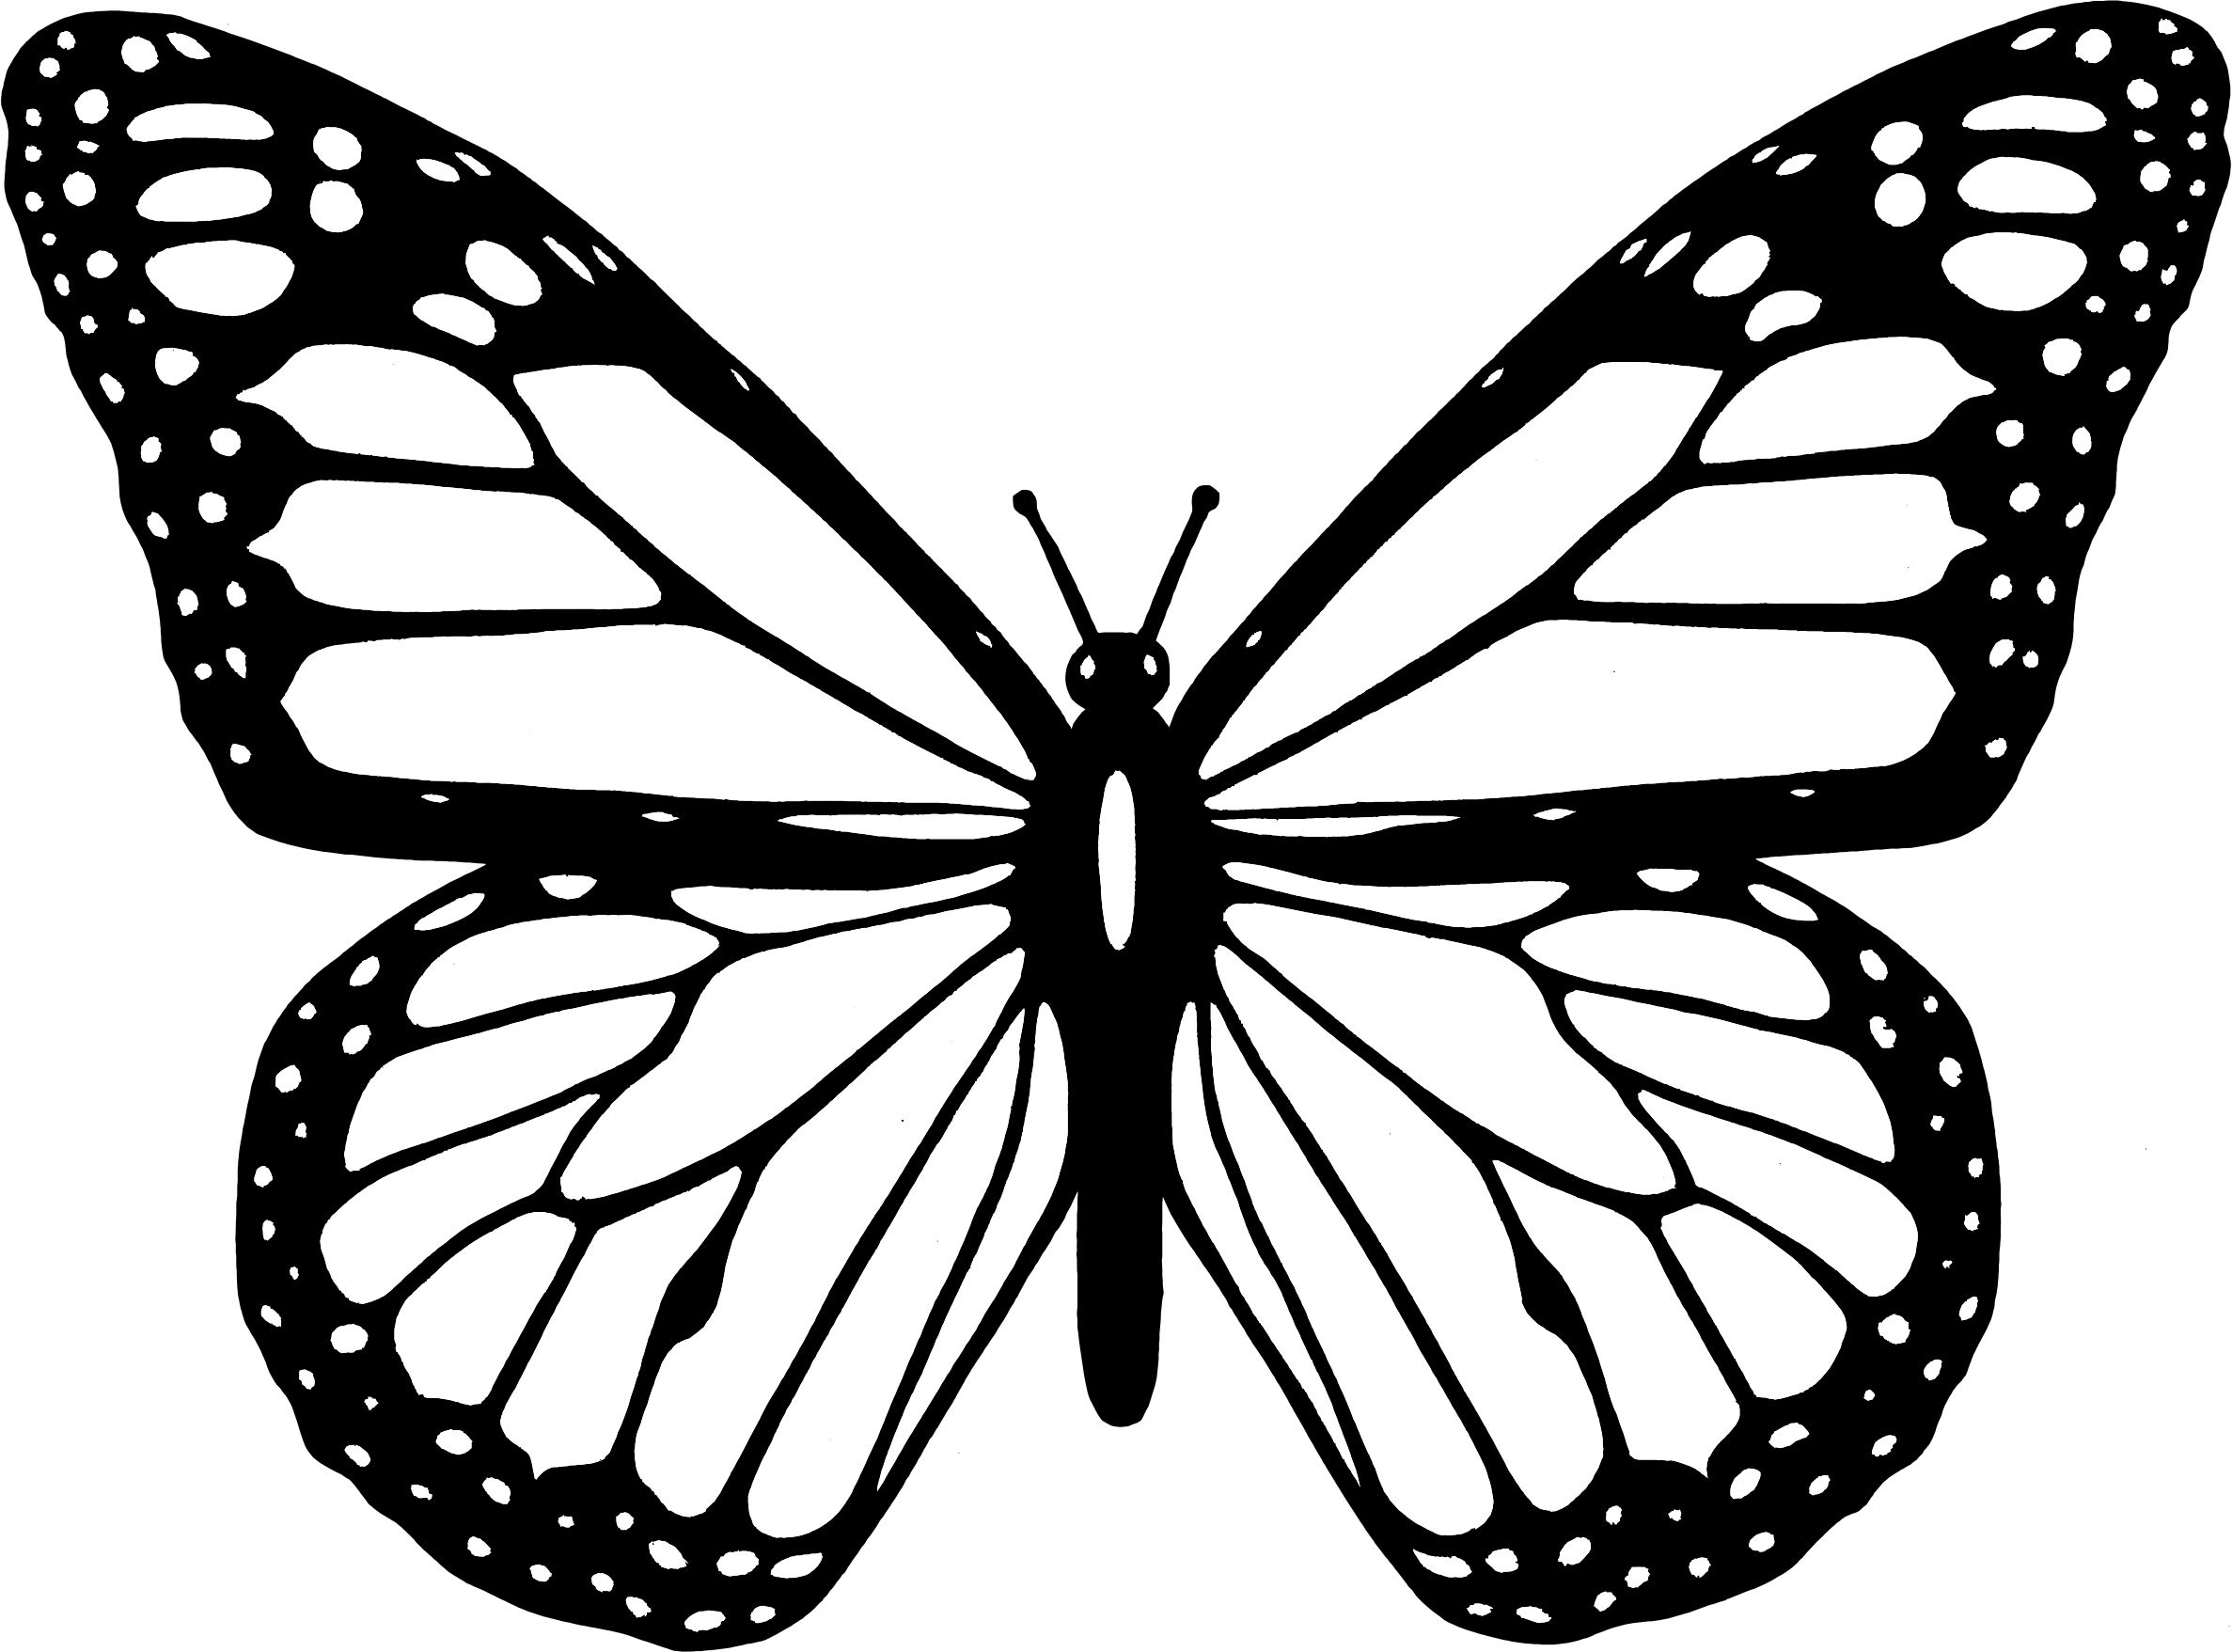 butterflies coloring page butterfly coloring pages free download on clipartmag coloring page butterflies